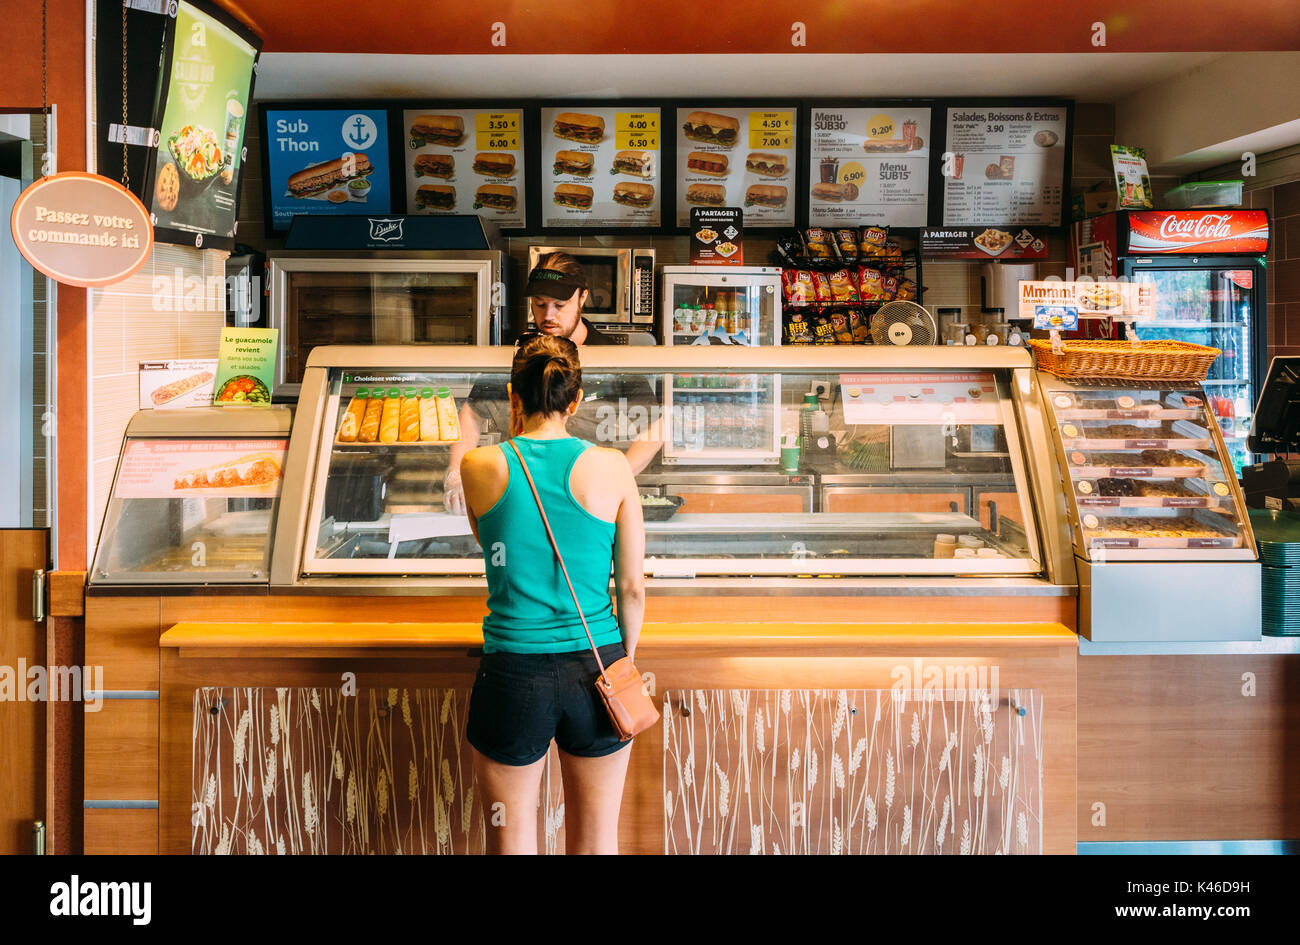 Subway fast-food restaurant in France. Customer at the counter. Subway is supposed to be an alternative healthy fast-food chain - Stock Image